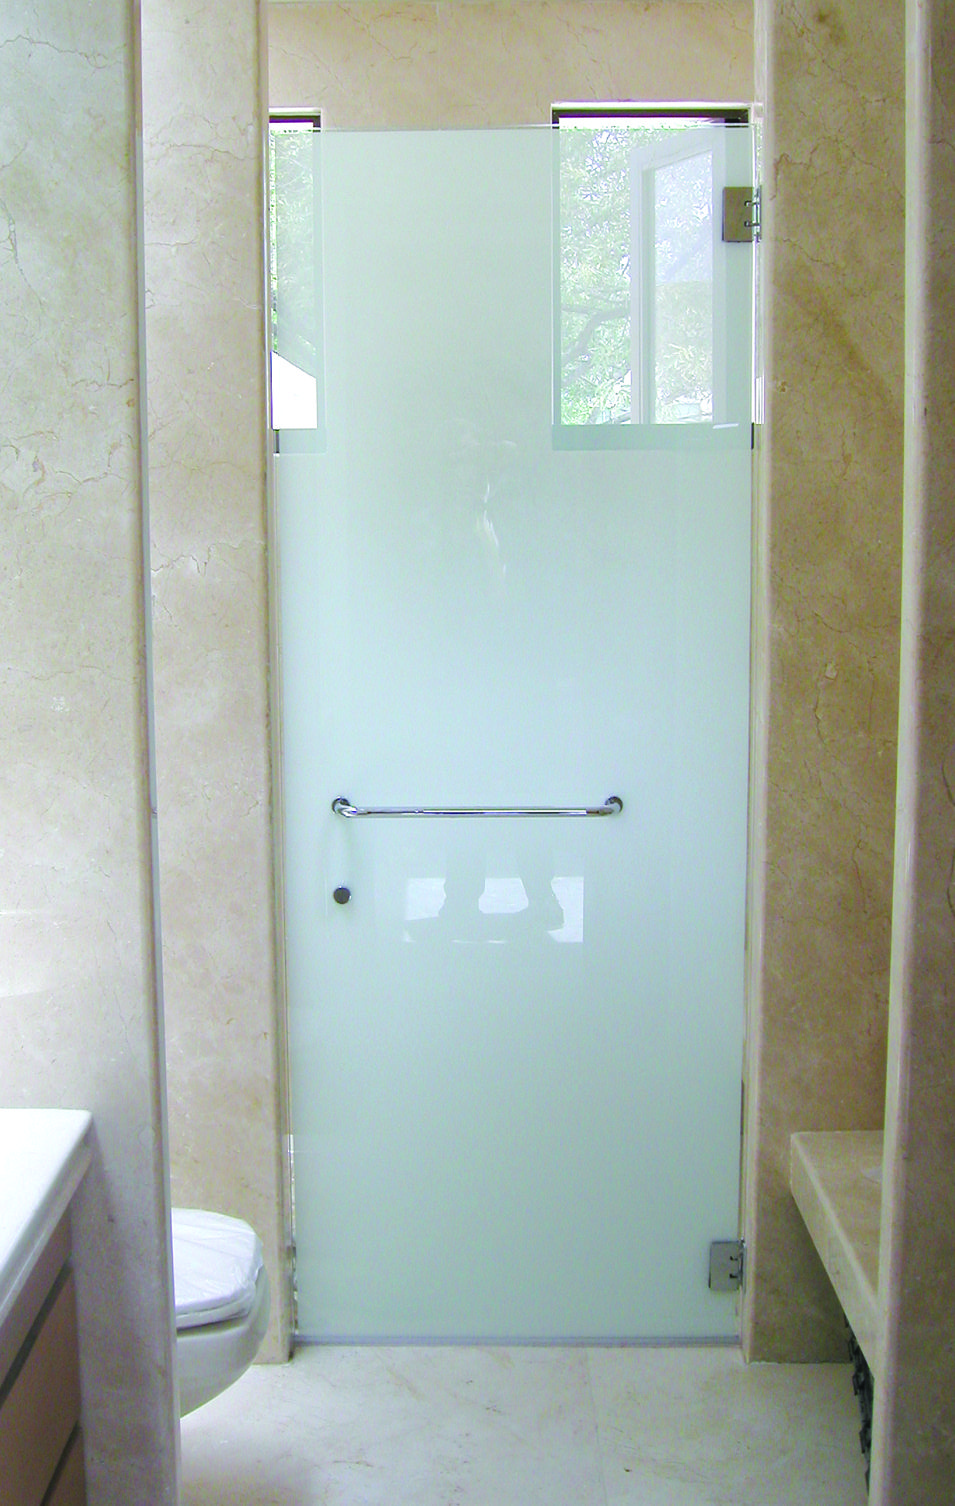 Austin shower door contractor offers sales and installations of austin shower door contractor offers sales and installations of heavy glass shower enclosures in traditional framed cleaning glass shower doorsfrosted planetlyrics Image collections